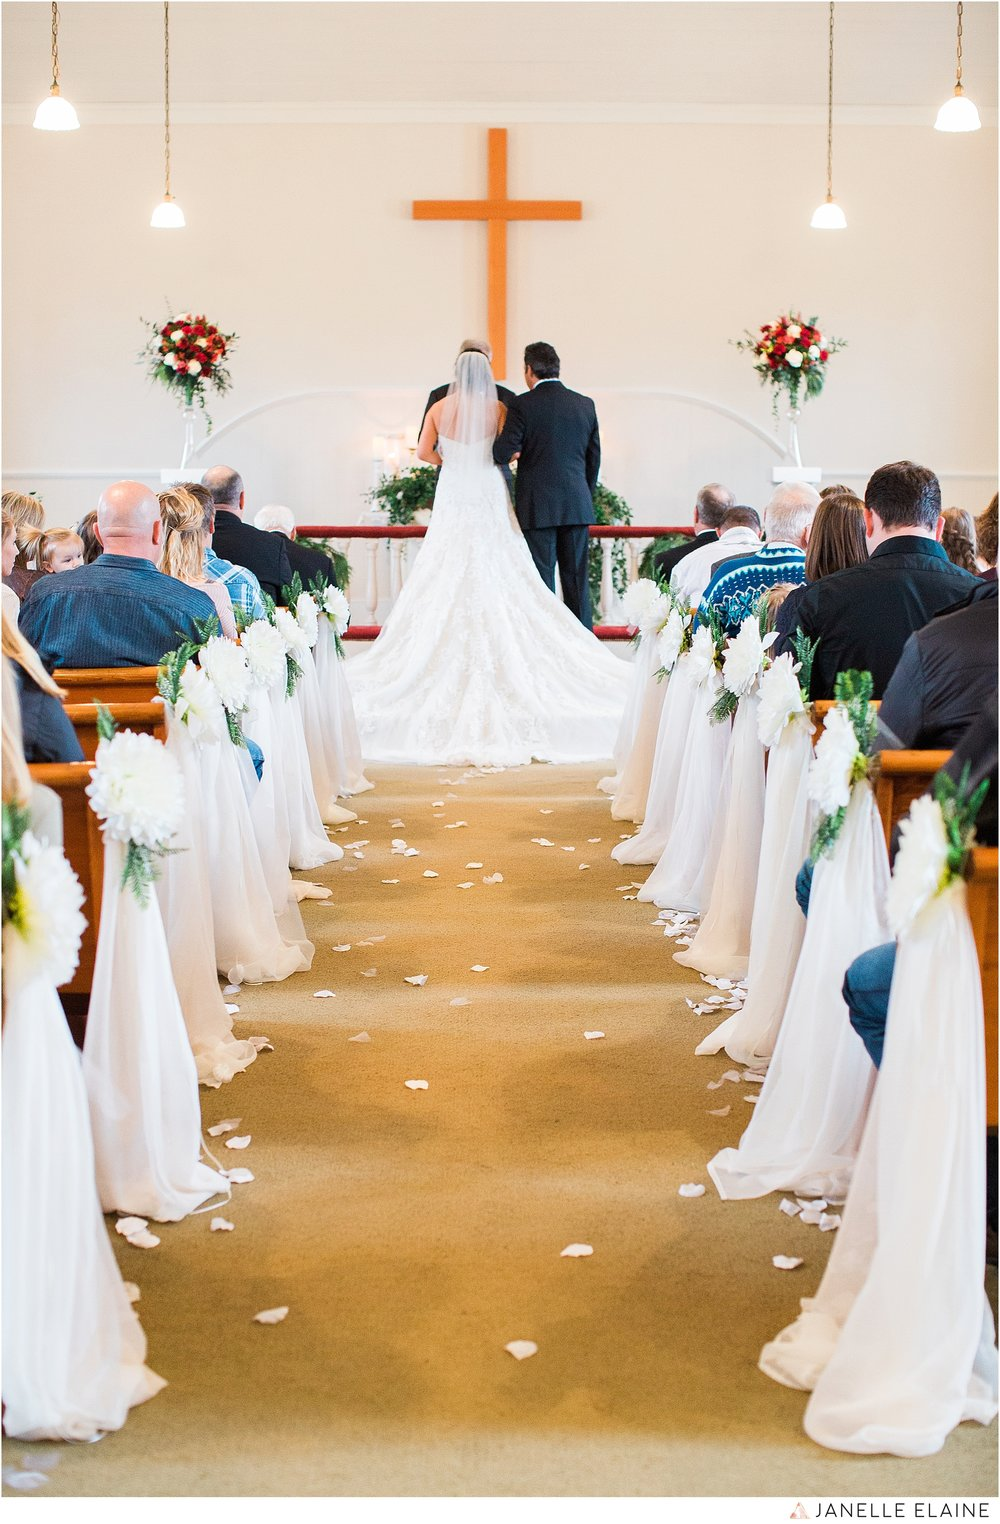 janelle elaine photography-ceremony and details-104.jpg